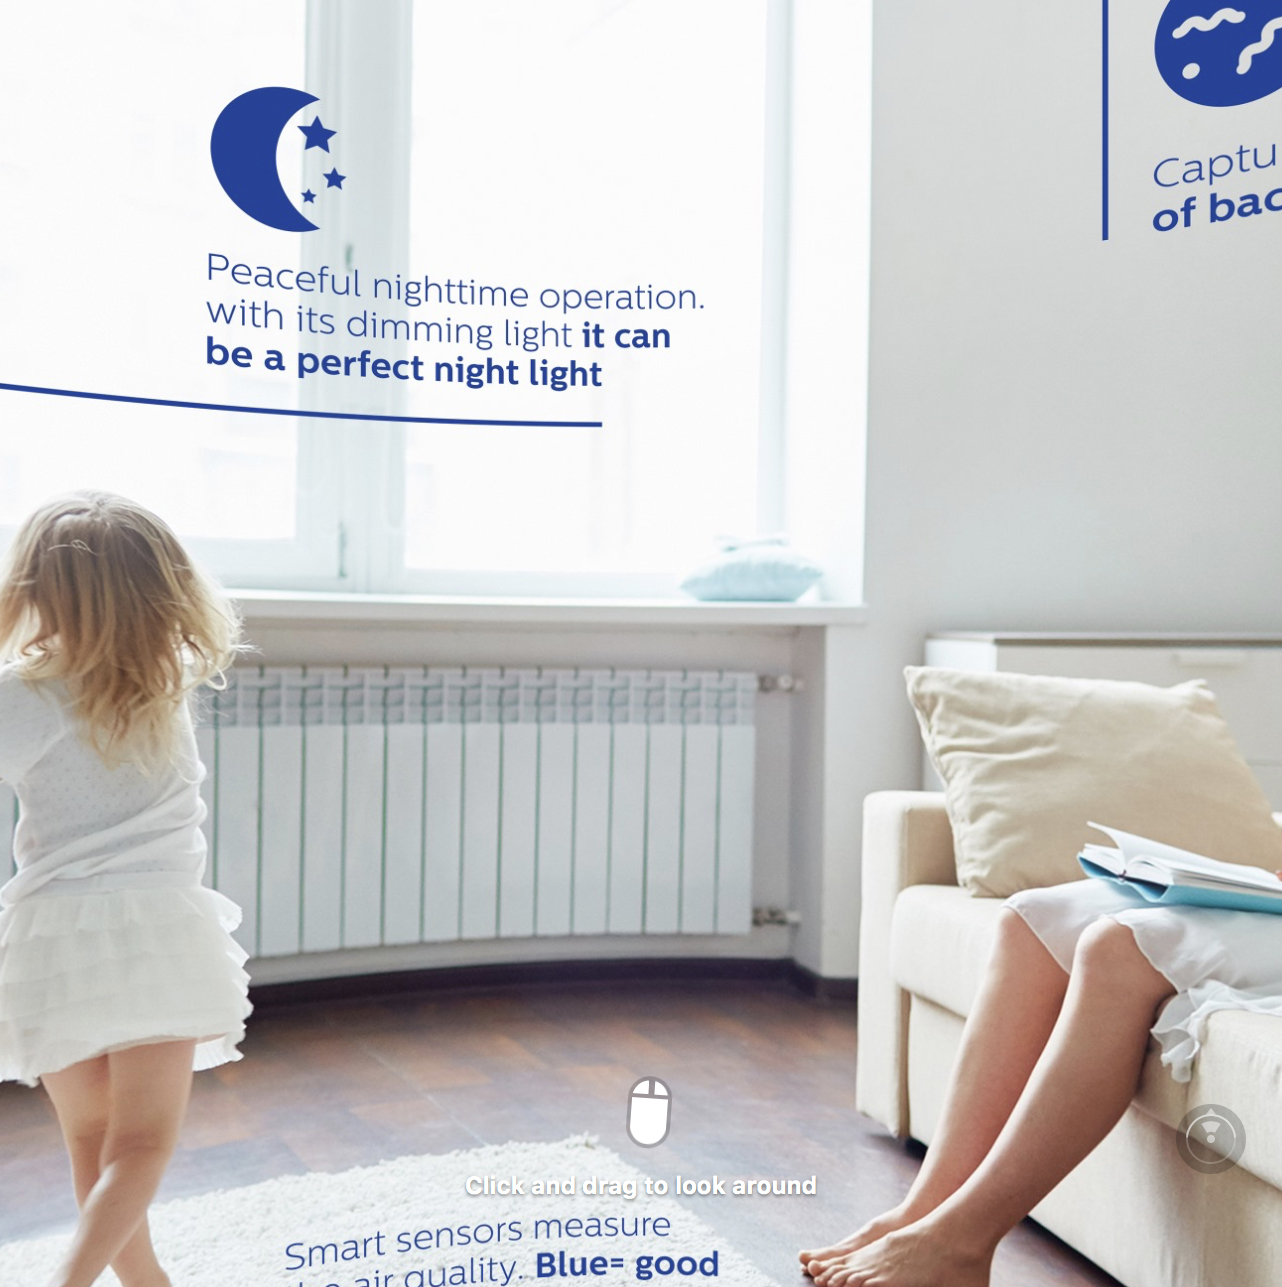 A happy home should be a healthy one. Find out how the Philips Air Purifier can help remove dust, pollen, bad odours and more and bring fresher air to your environment.  12K reactions - 153 shares